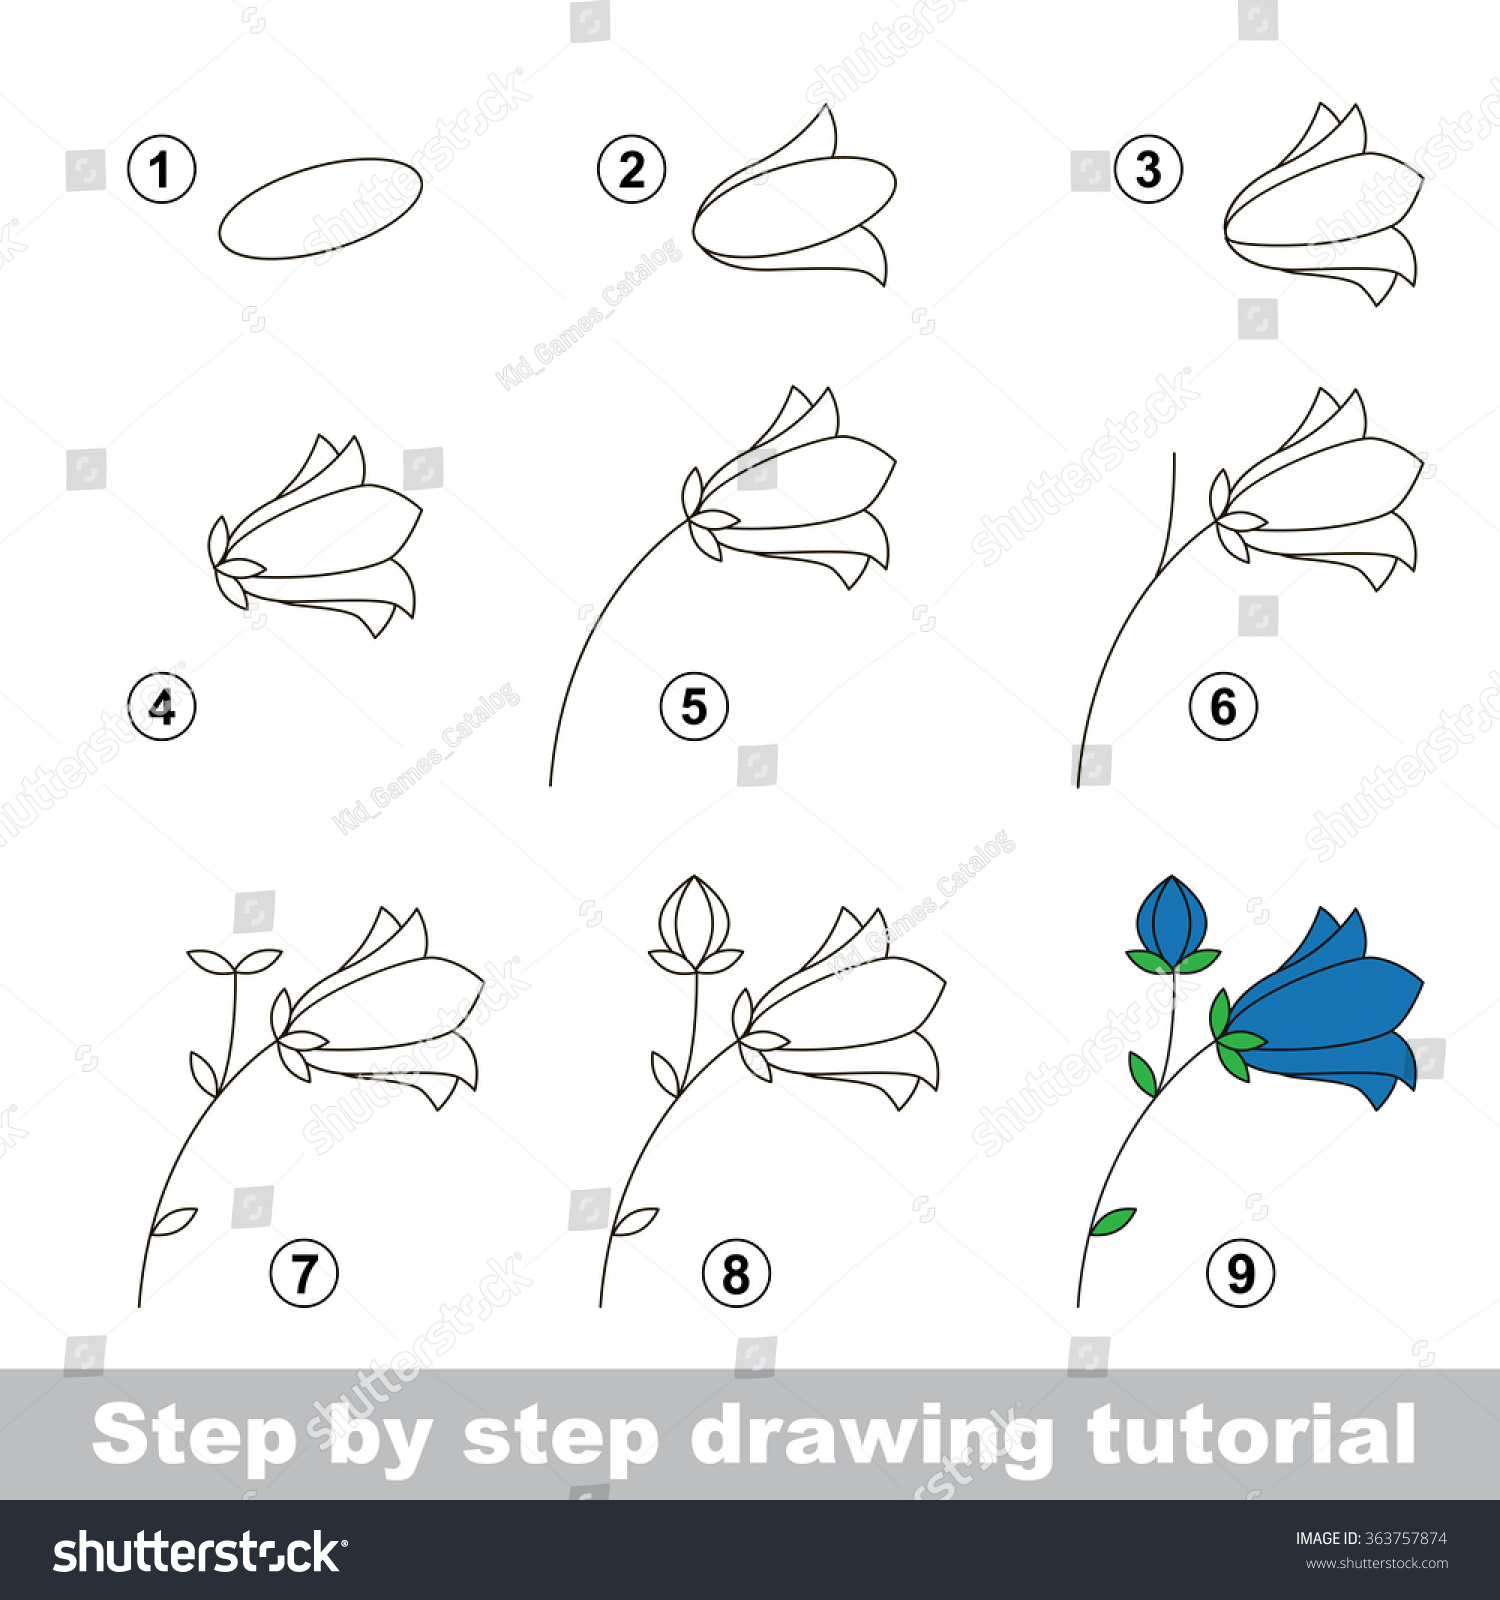 Step By Step Drawing Tutorial Vector Stock Vector Shutterstock